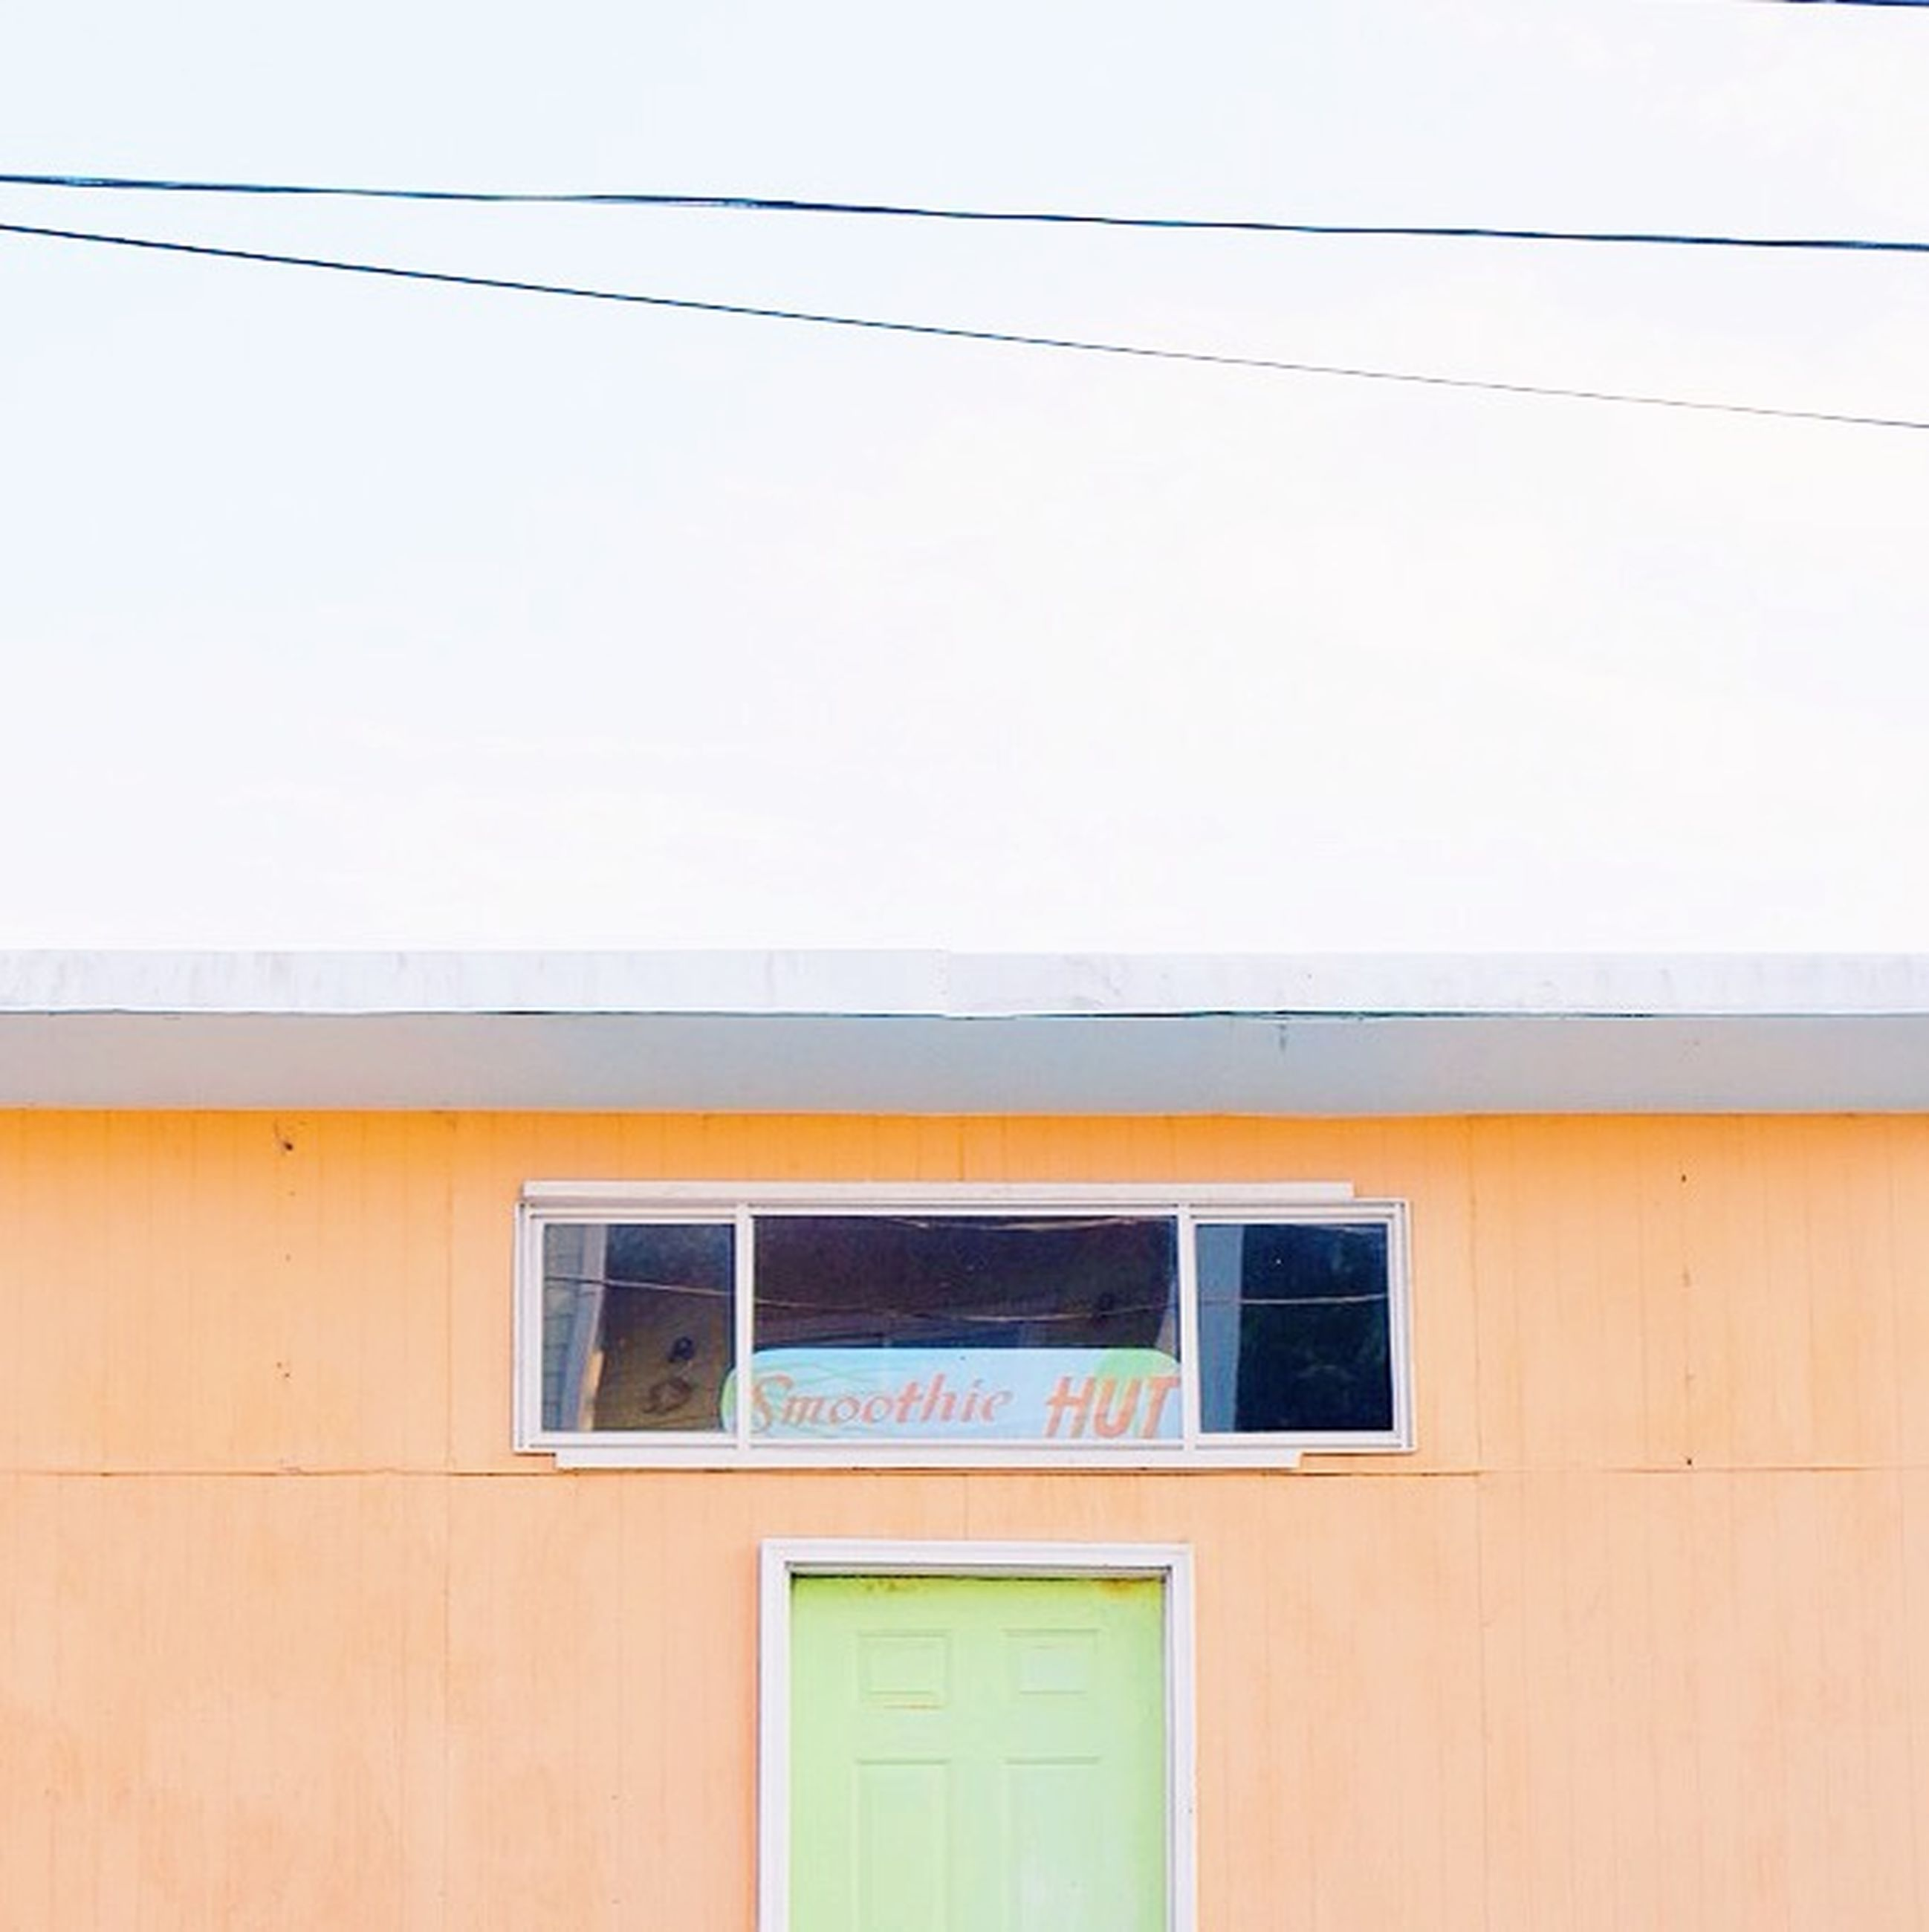 architecture, built structure, building exterior, window, cable, wall - building feature, low angle view, power line, yellow, wall, building, house, residential building, residential structure, day, no people, indoors, clear sky, glass - material, copy space